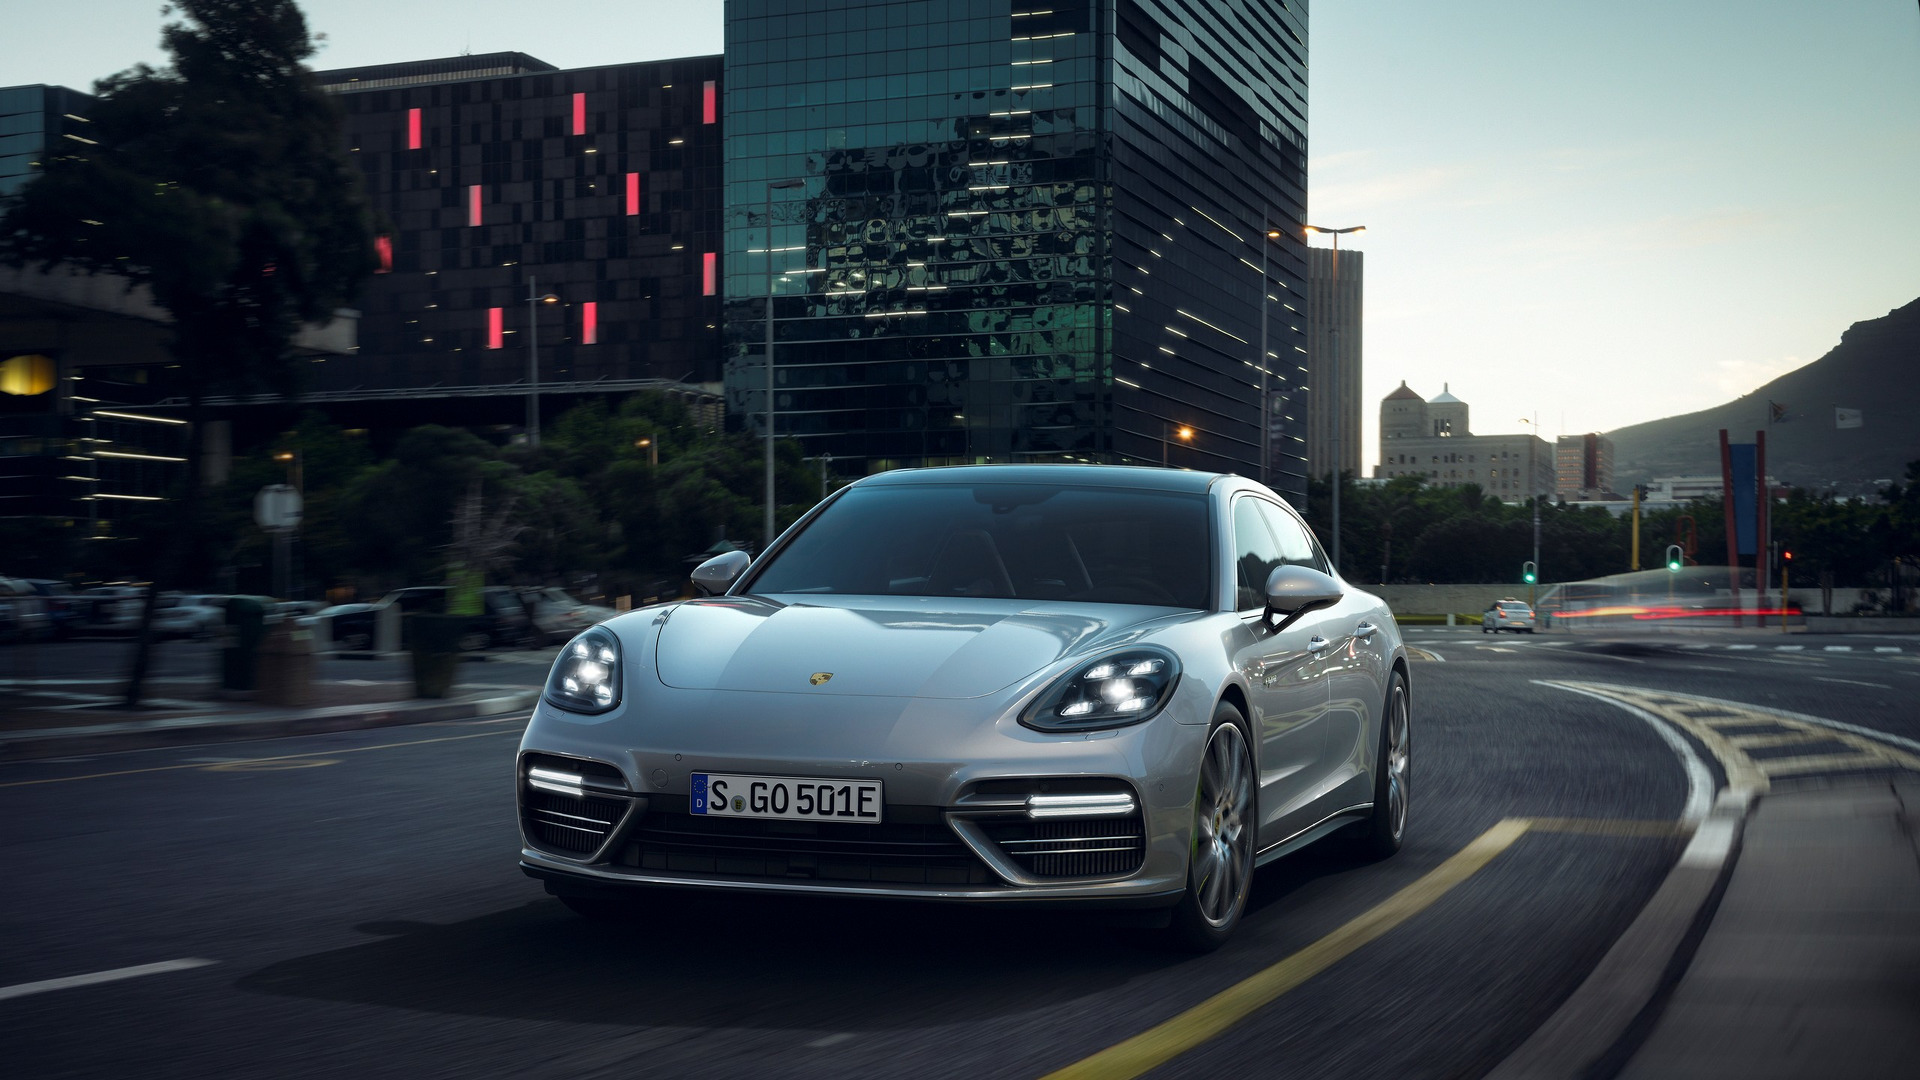 Interface-Porsche-Panamera-S-E-Hybrid-2018